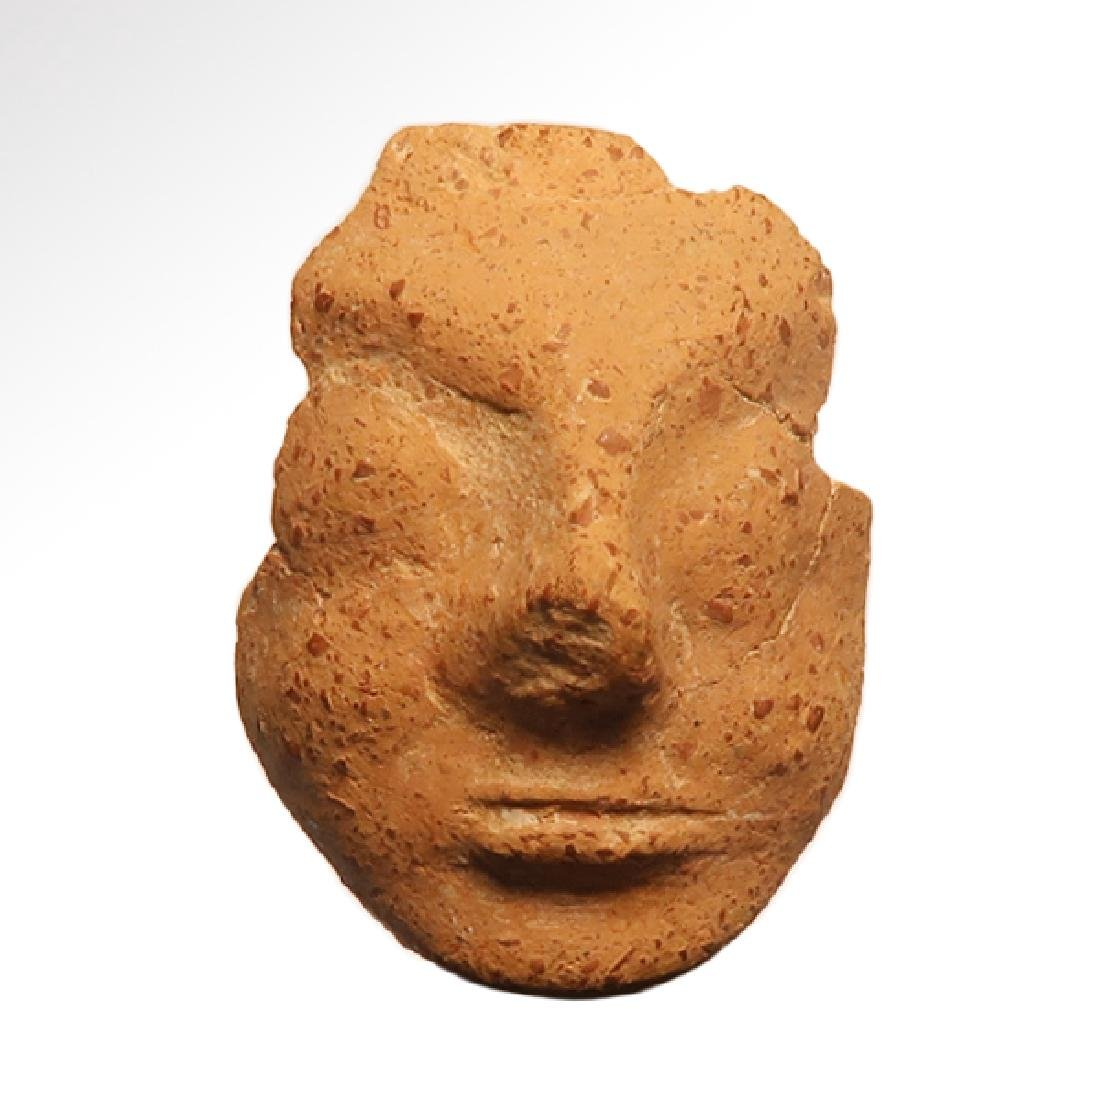 Greek Archaic Cypriot Terracotta Face Fragment, 1st